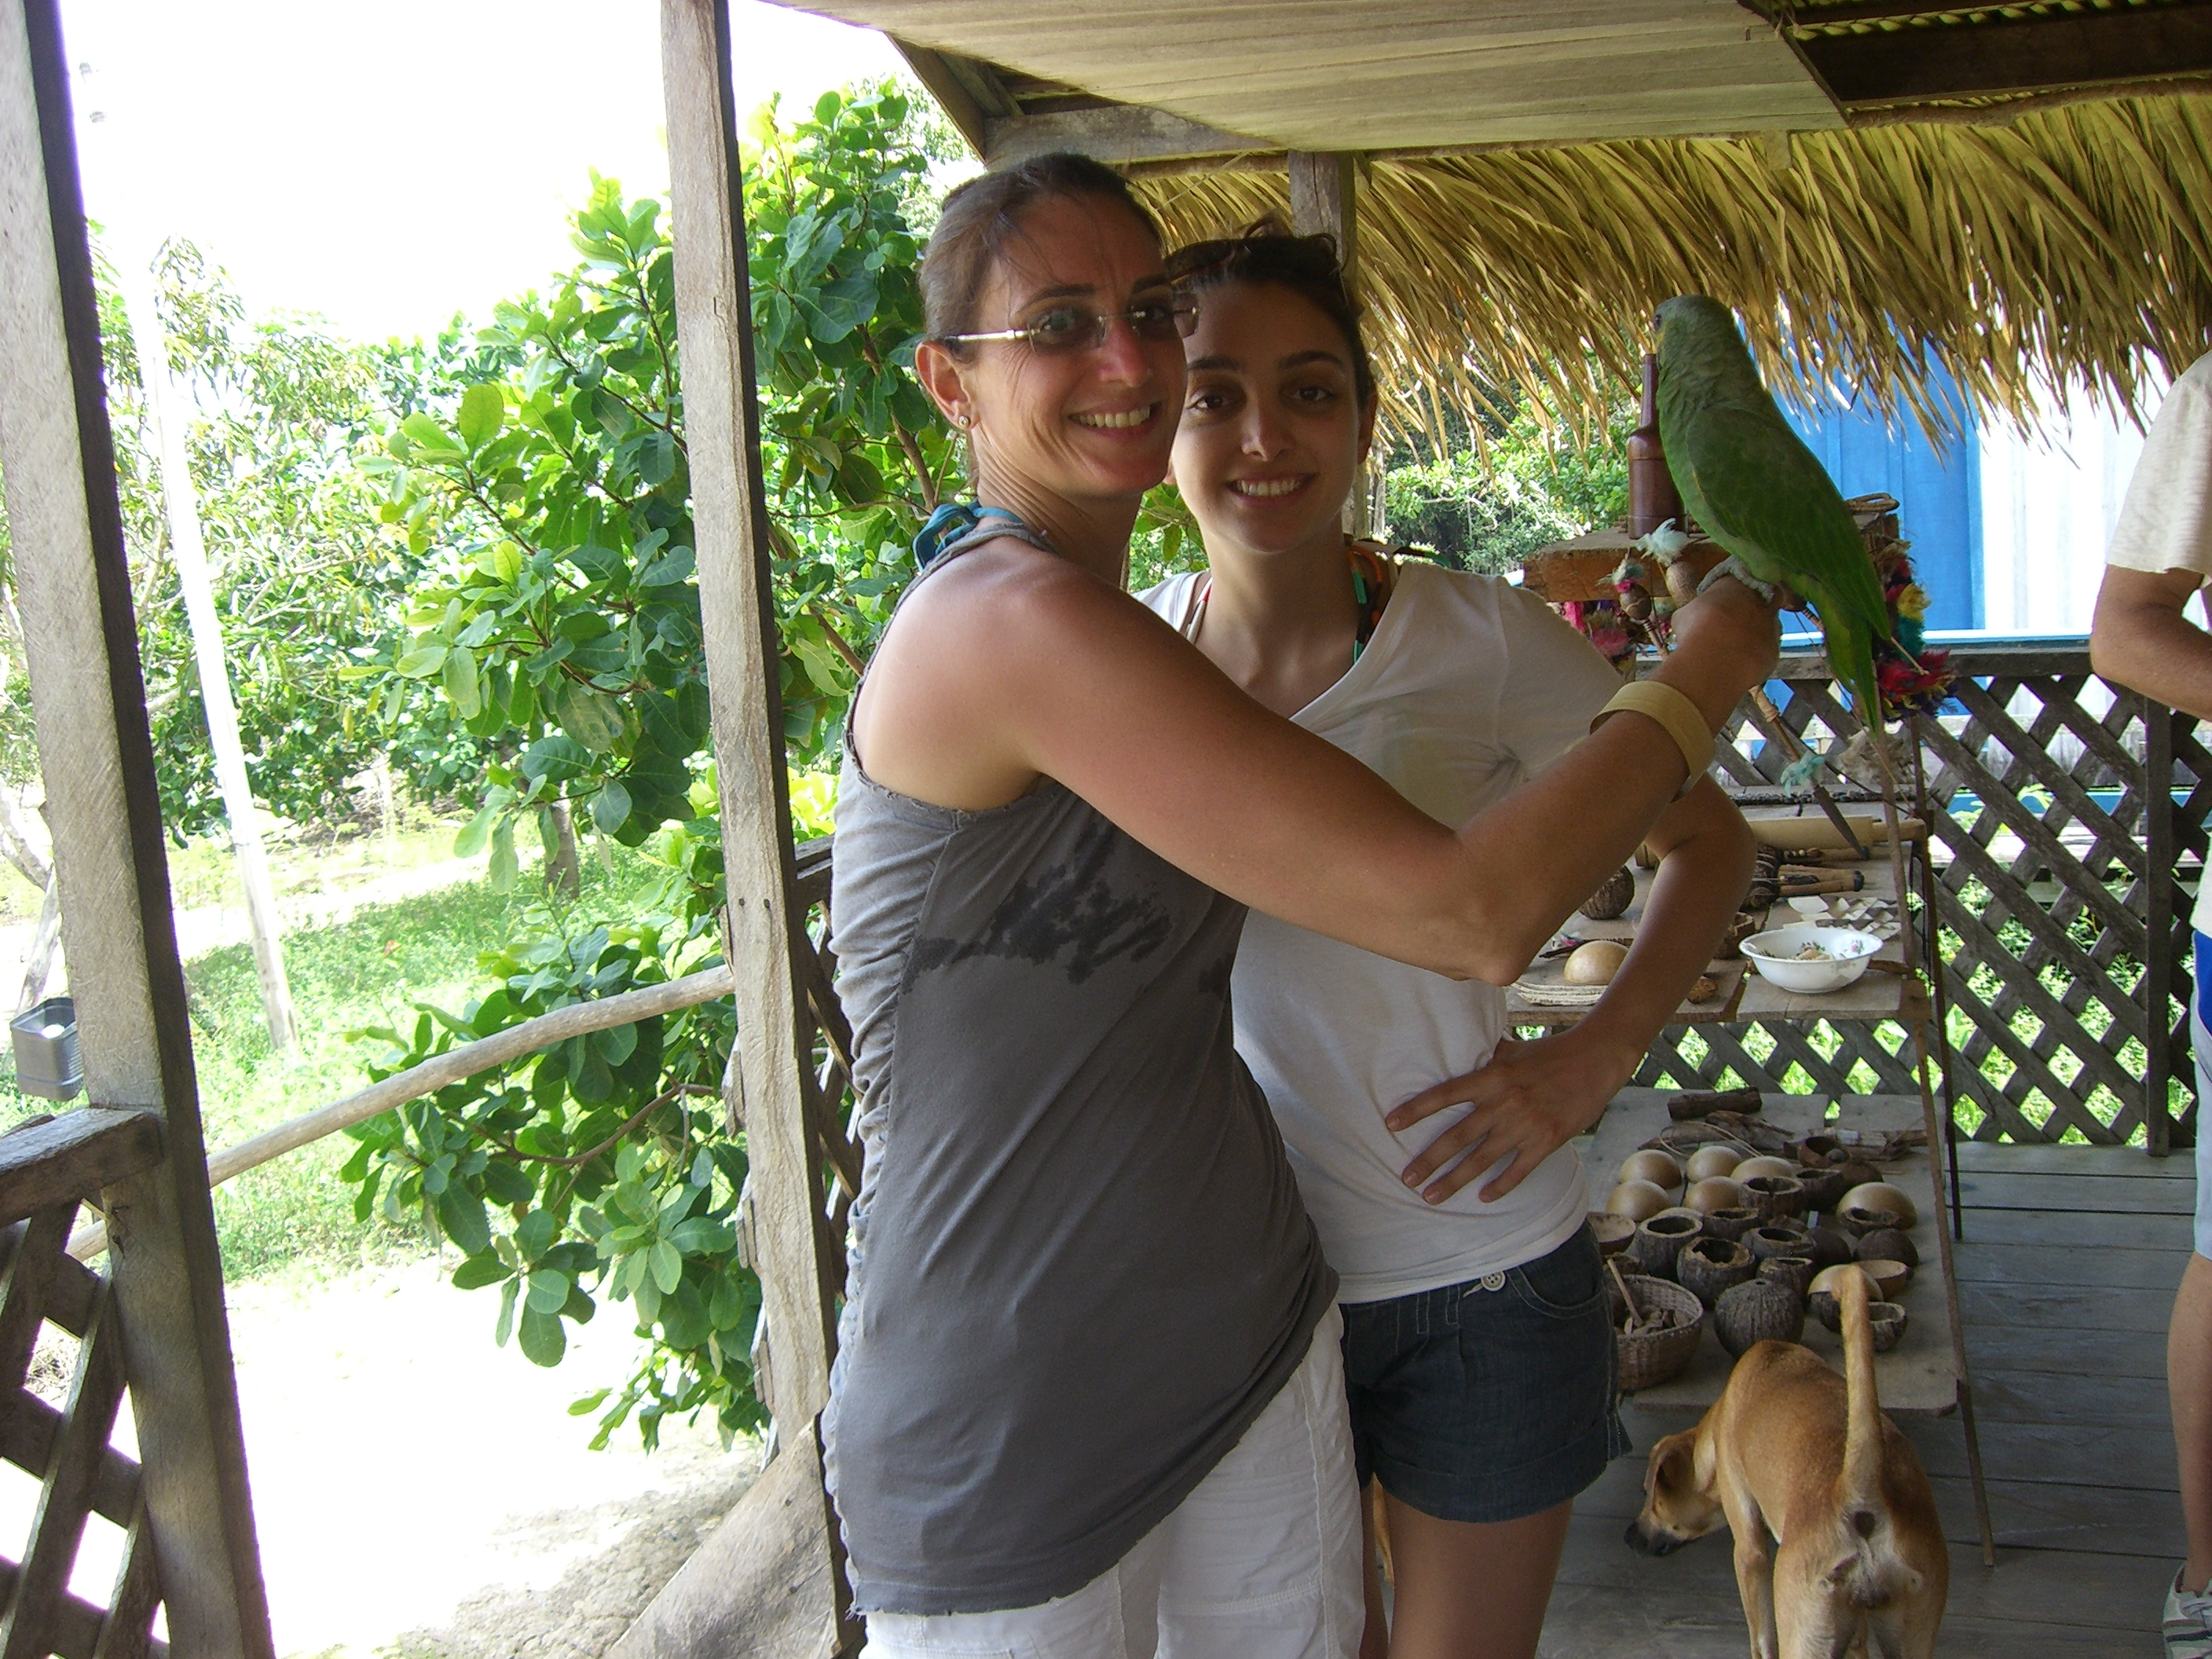 Sabrina and Karine-Visiting natives Amazon